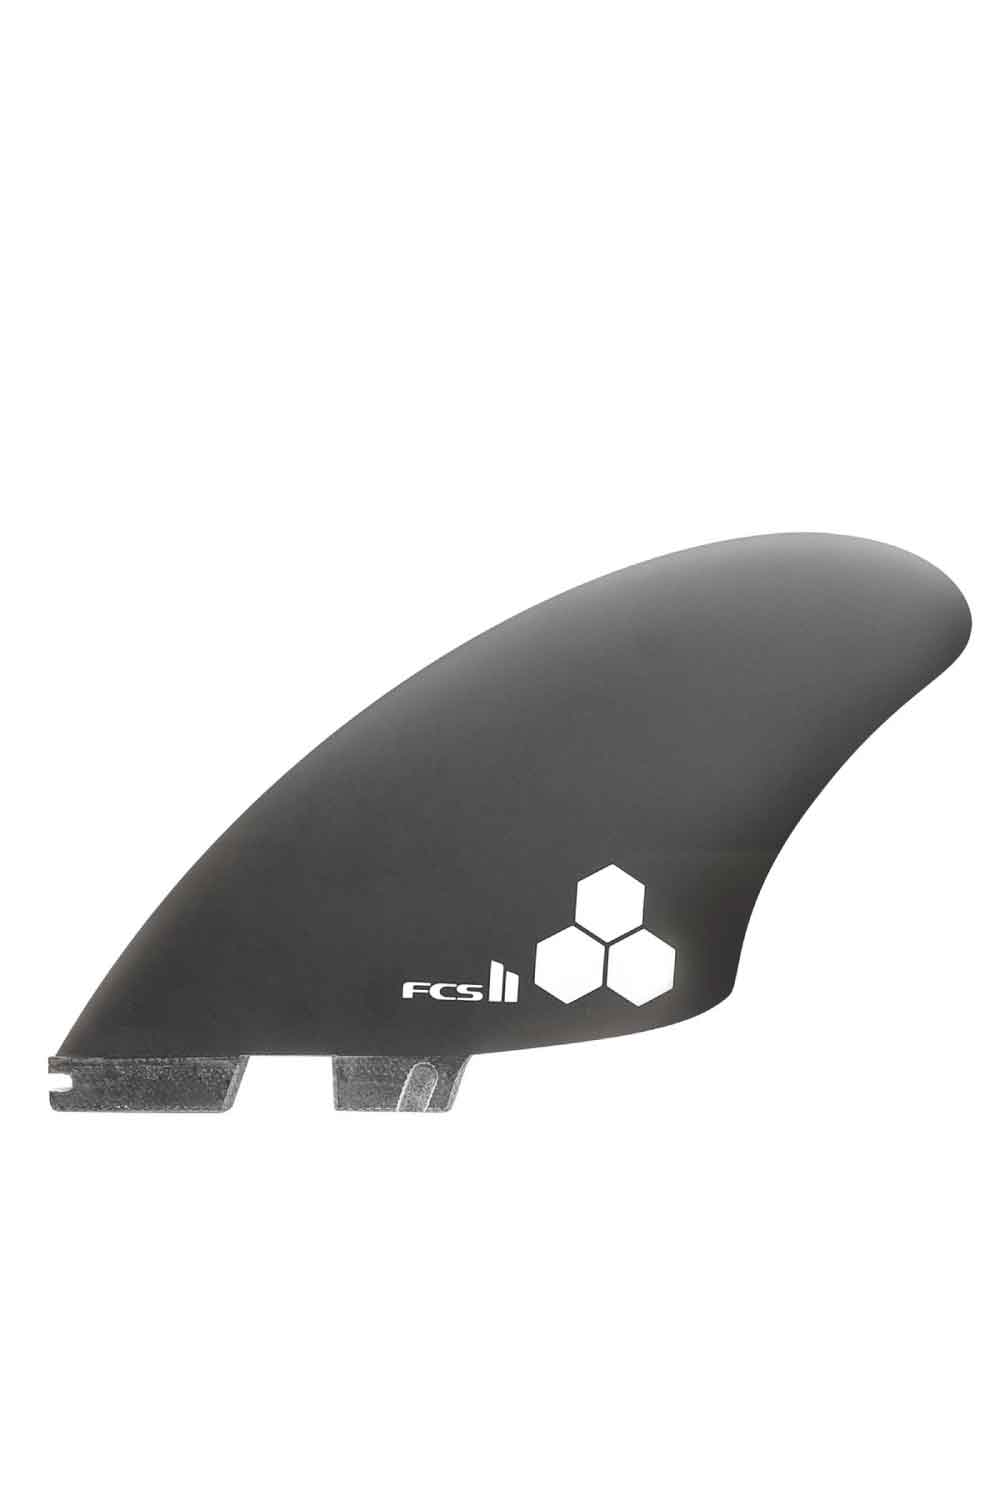 FCS2 Channel Islands CI Keel Fins